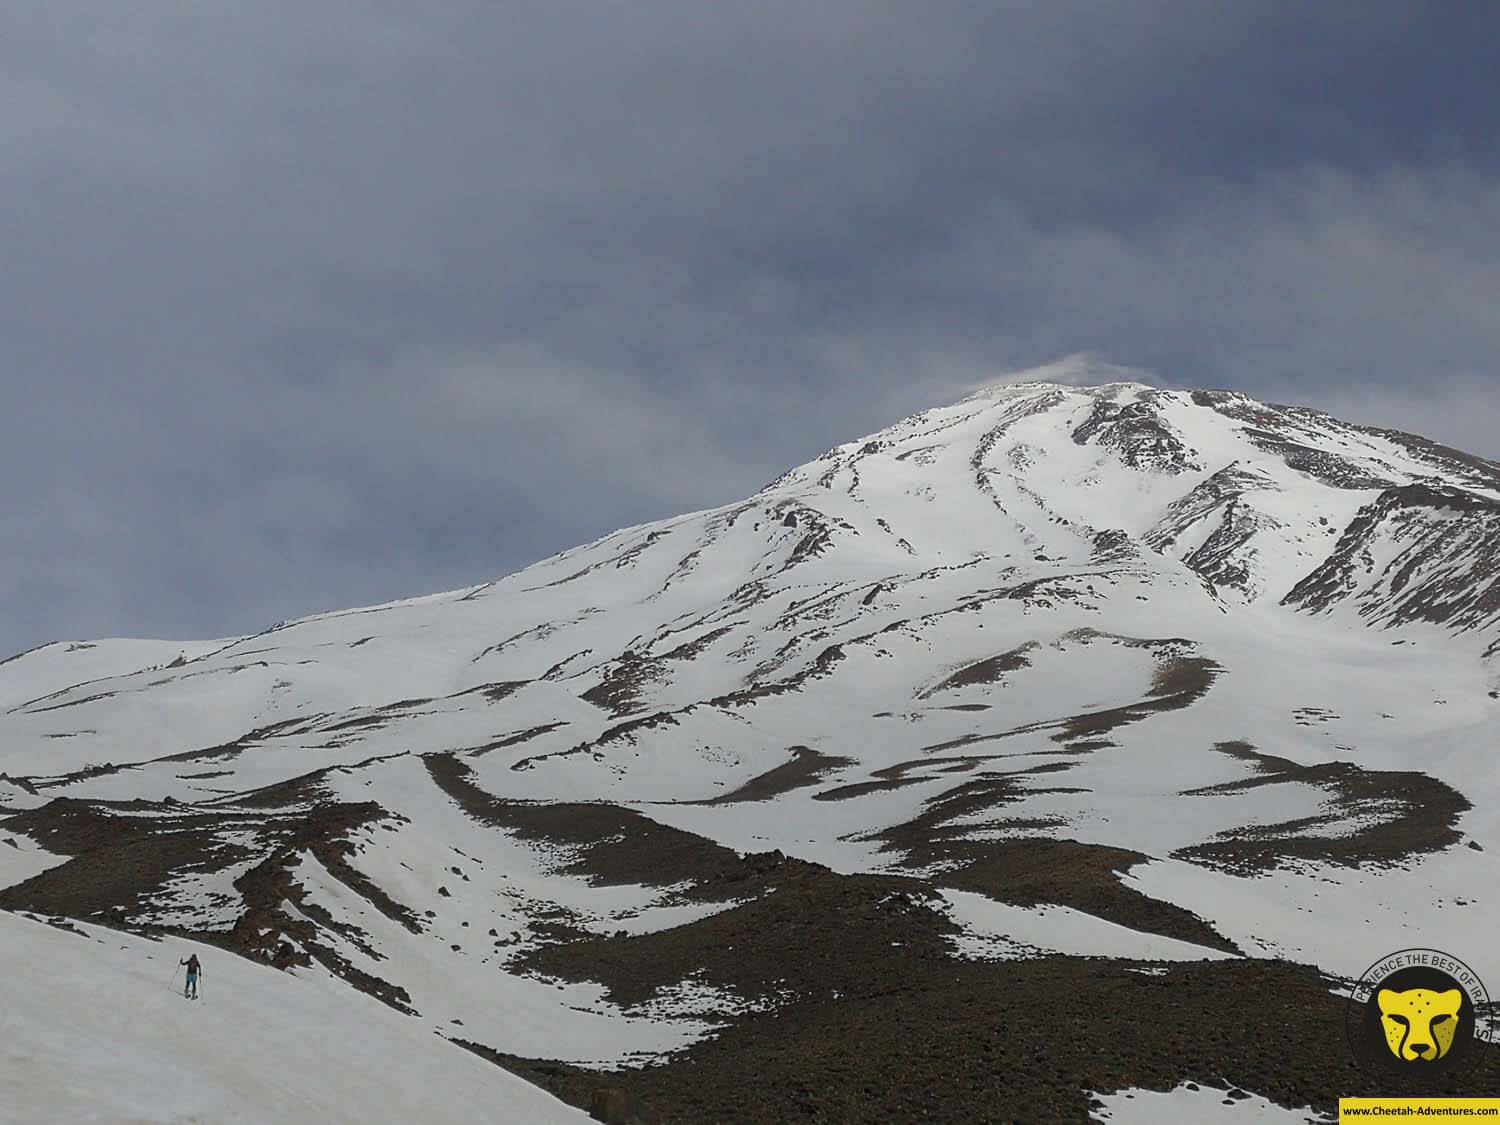 5-2 On the way to Bargah-e Sevom Hut from Goosfandsara at 3300m, Damavand Ski Touring